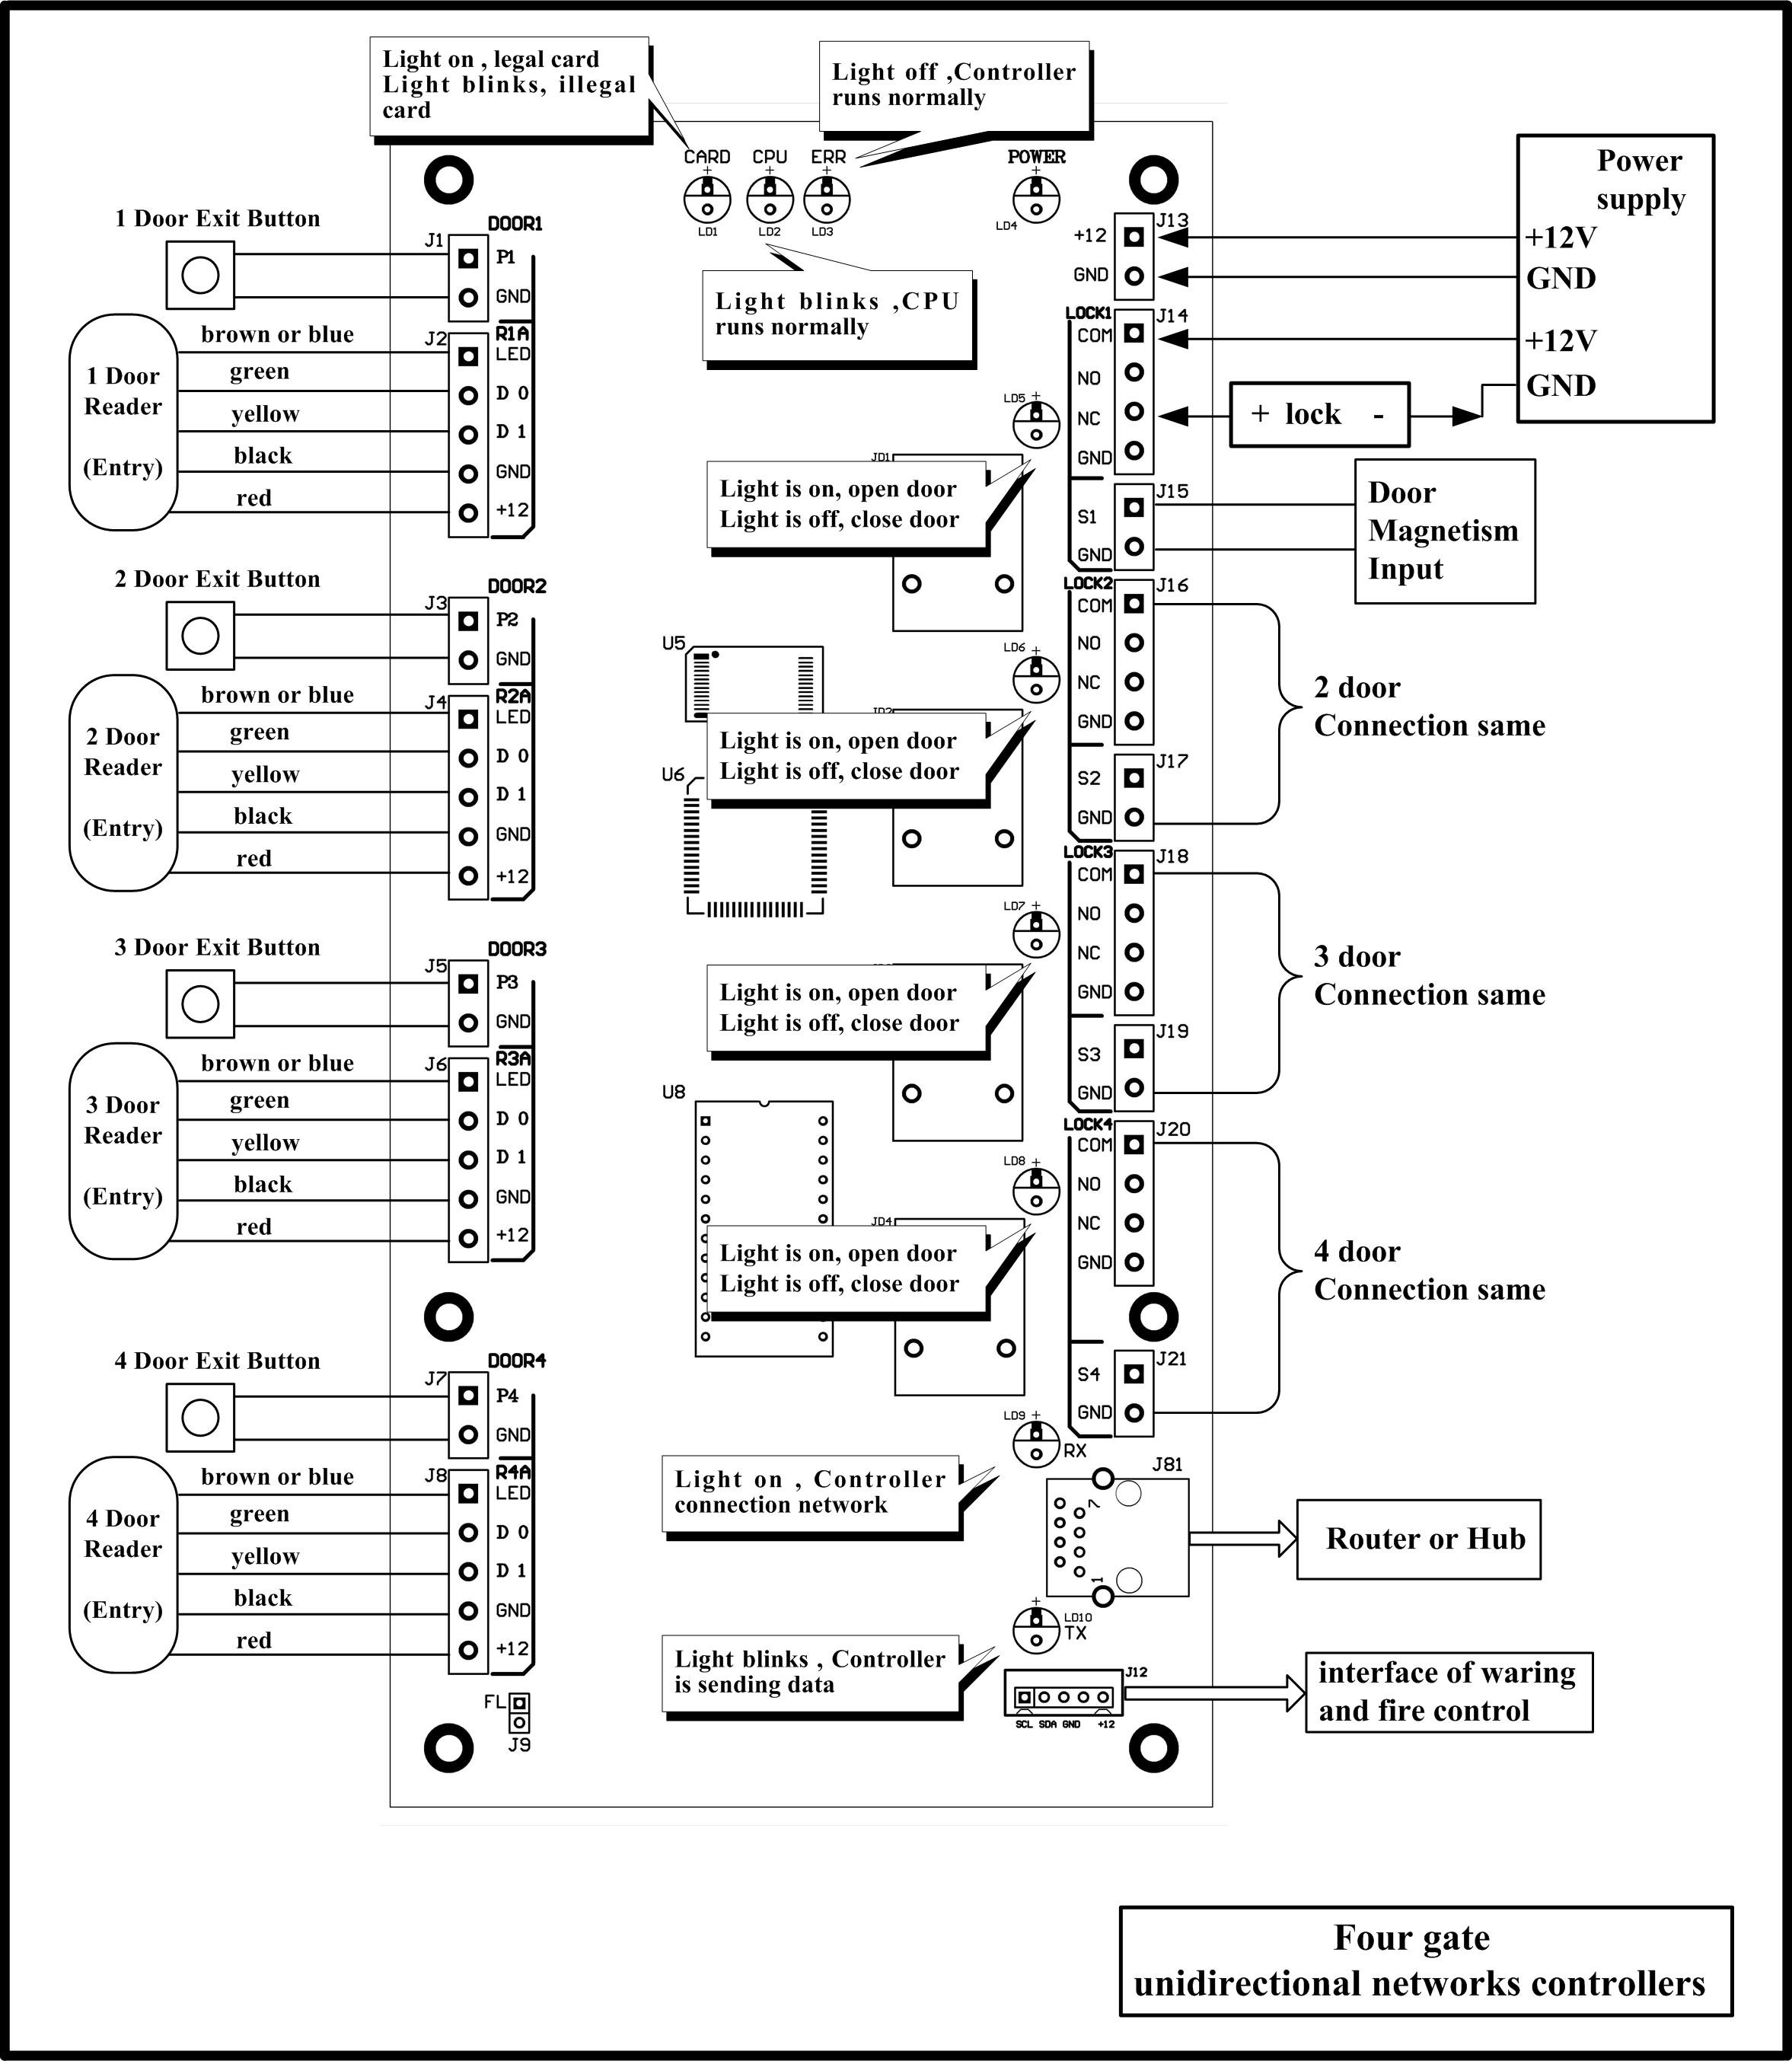 Access Control Wiring Diagram | Free Wiring Diagram on wiring diagram for security doors, wiring diagram for garage doors, wiring diagram for accessories, wiring diagram for burglar alarms, wiring diagram for security cameras, wiring diagram for lighting,